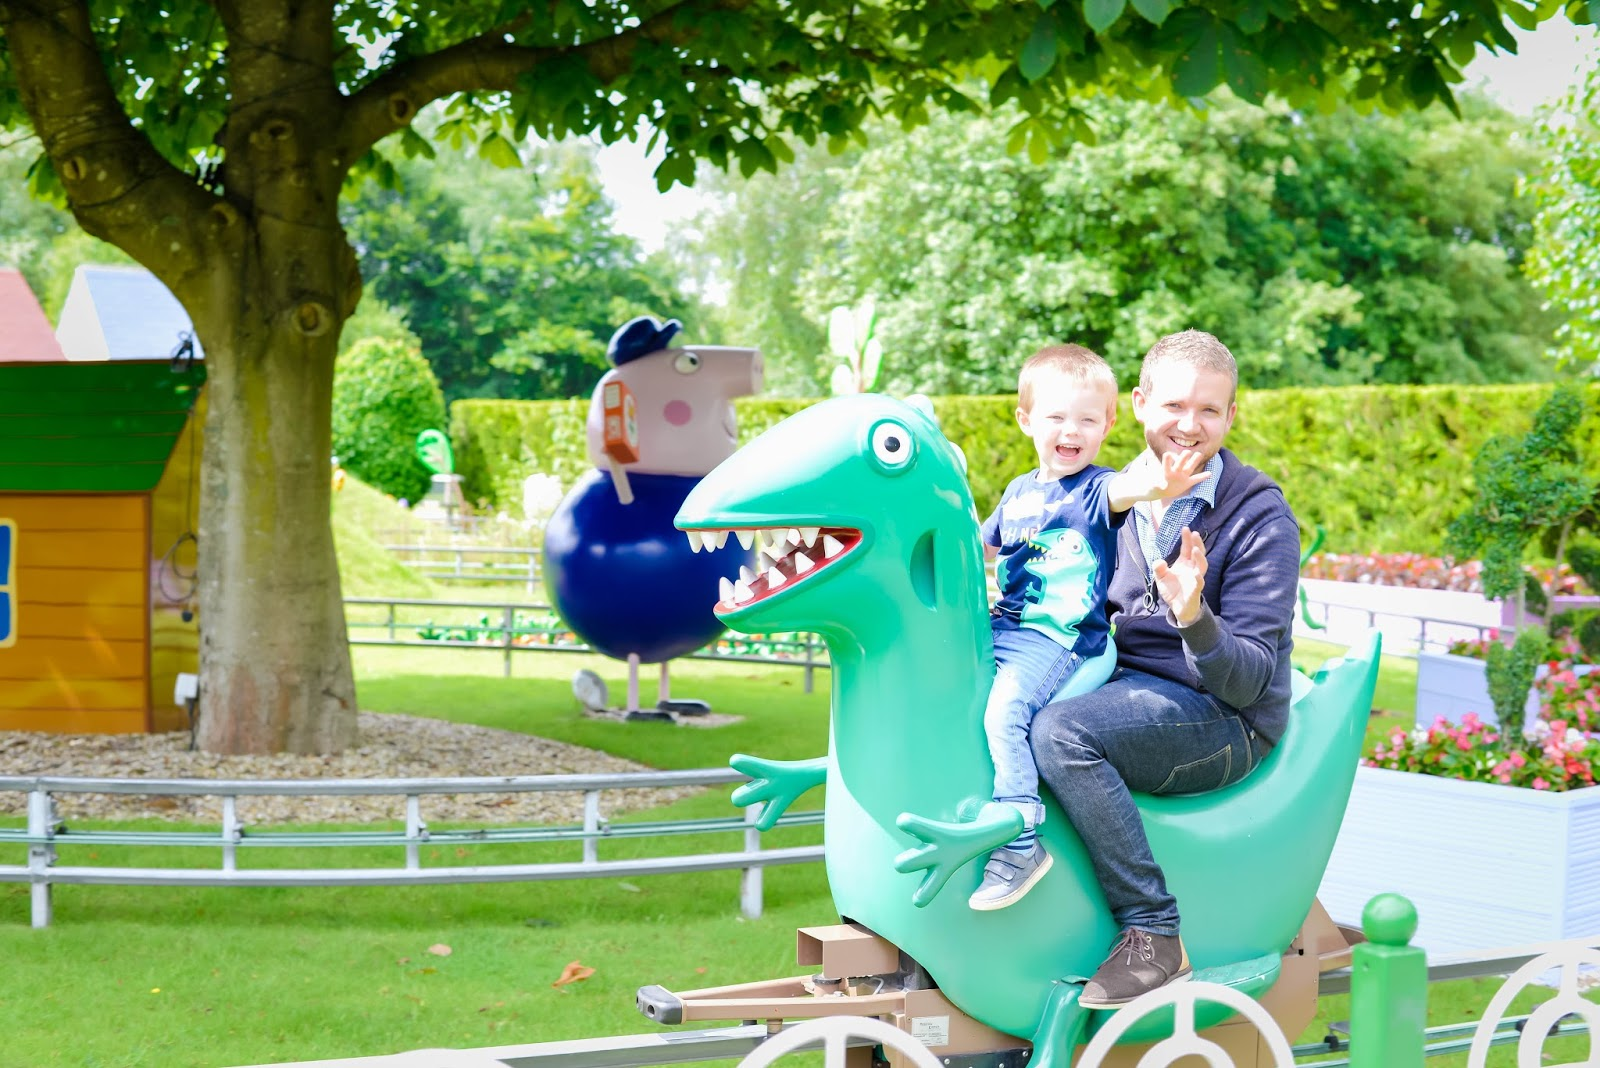 peppa pig world, paultons park, peppa pig world review